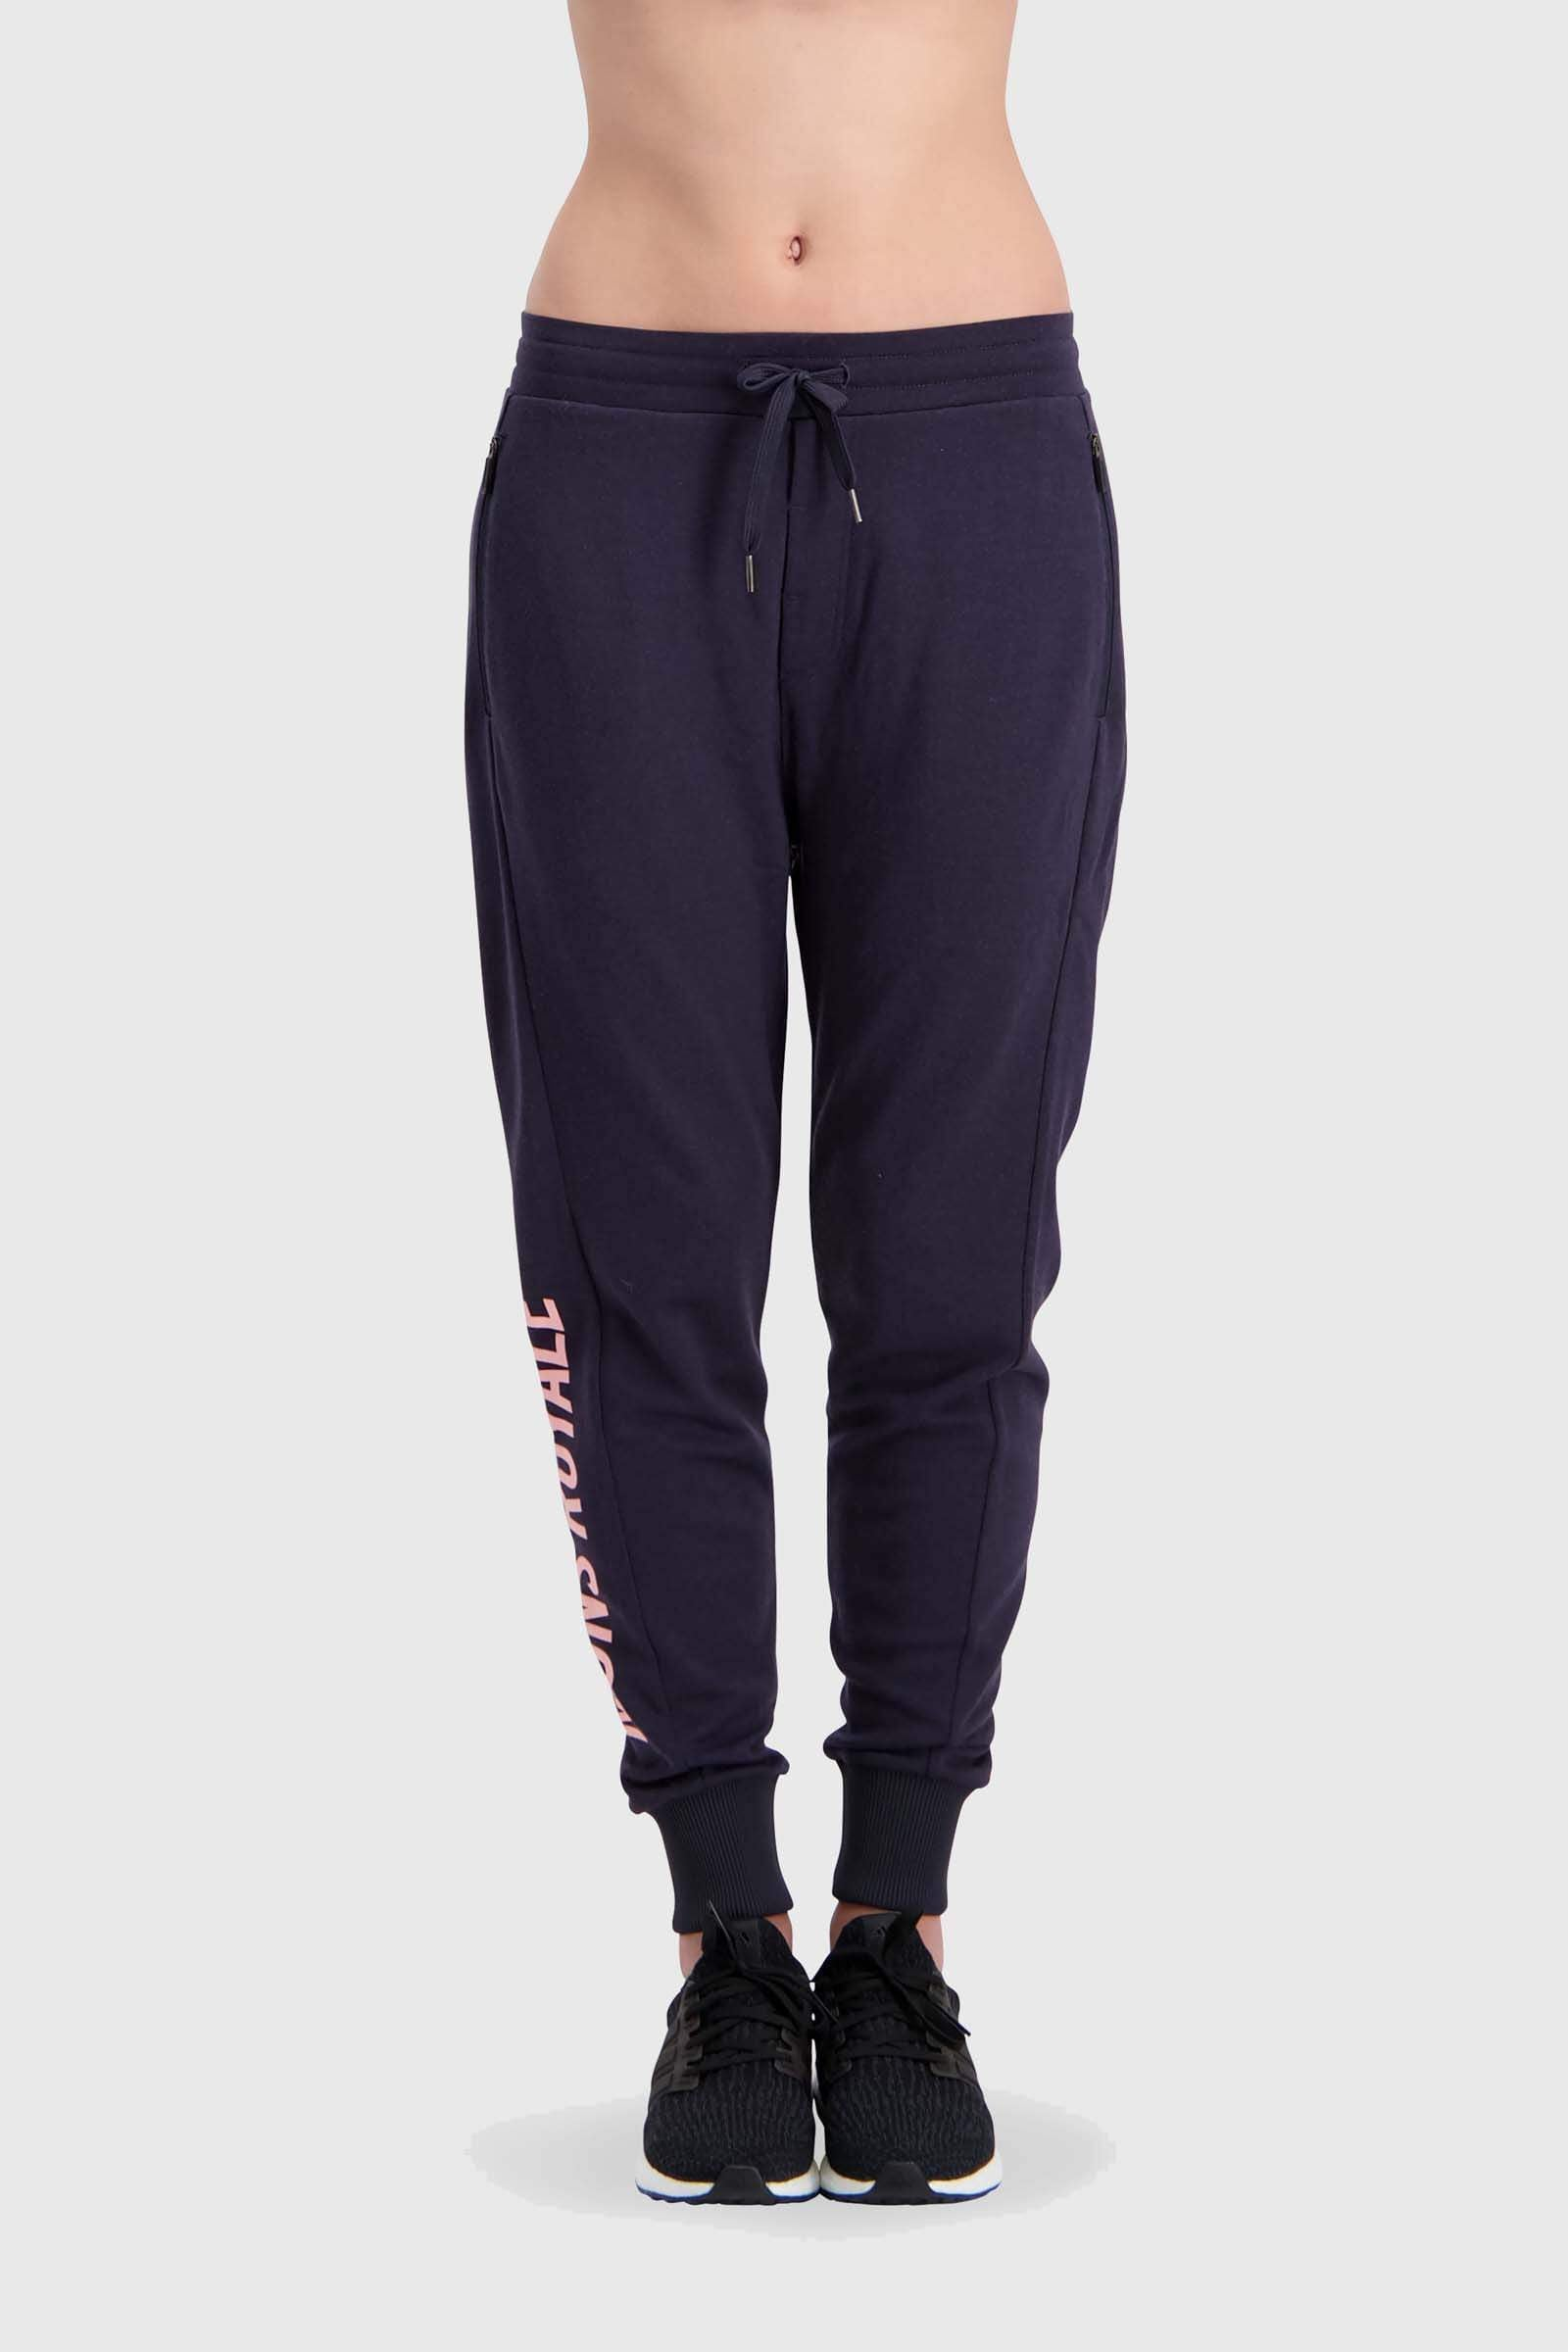 Womens Mid Layer Pants & Bottoms